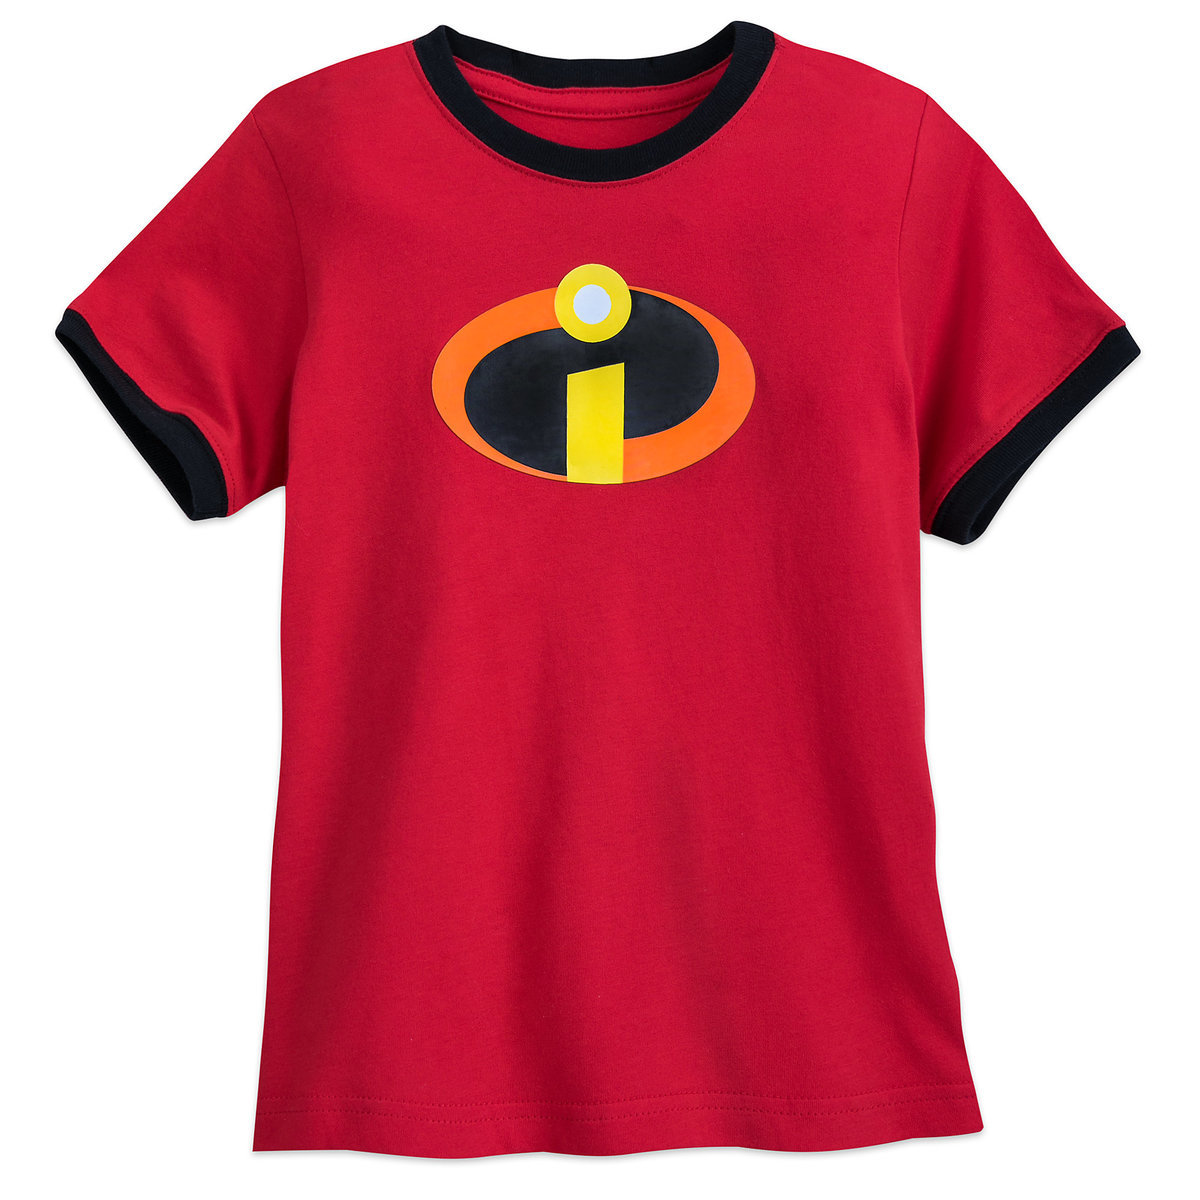 New Incredibles 2 Clothing Collection Released ...